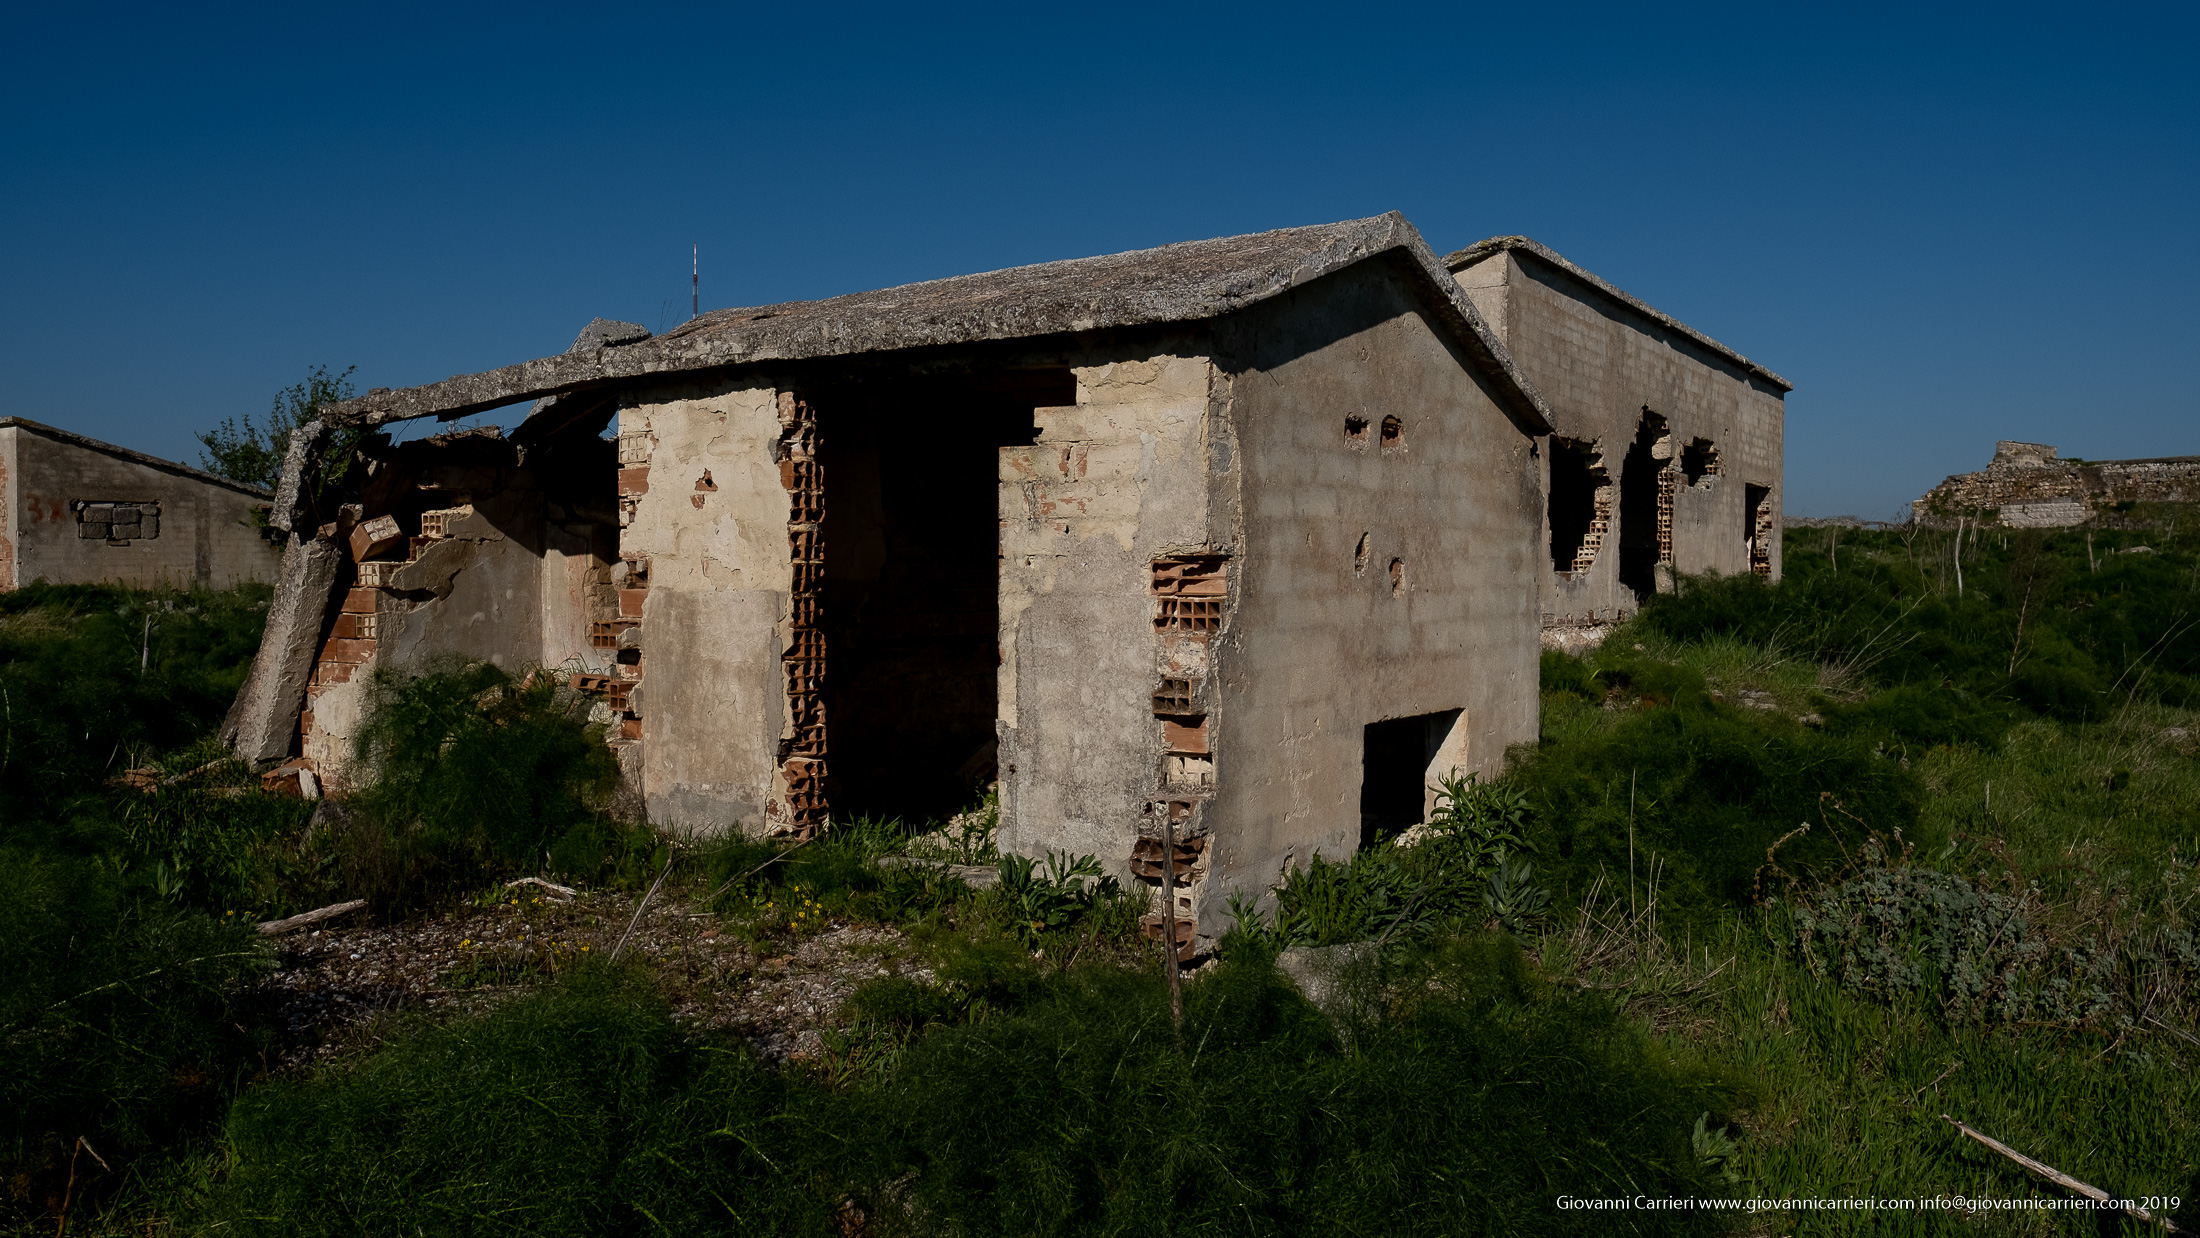 Series of Ruins of Mount Caccia